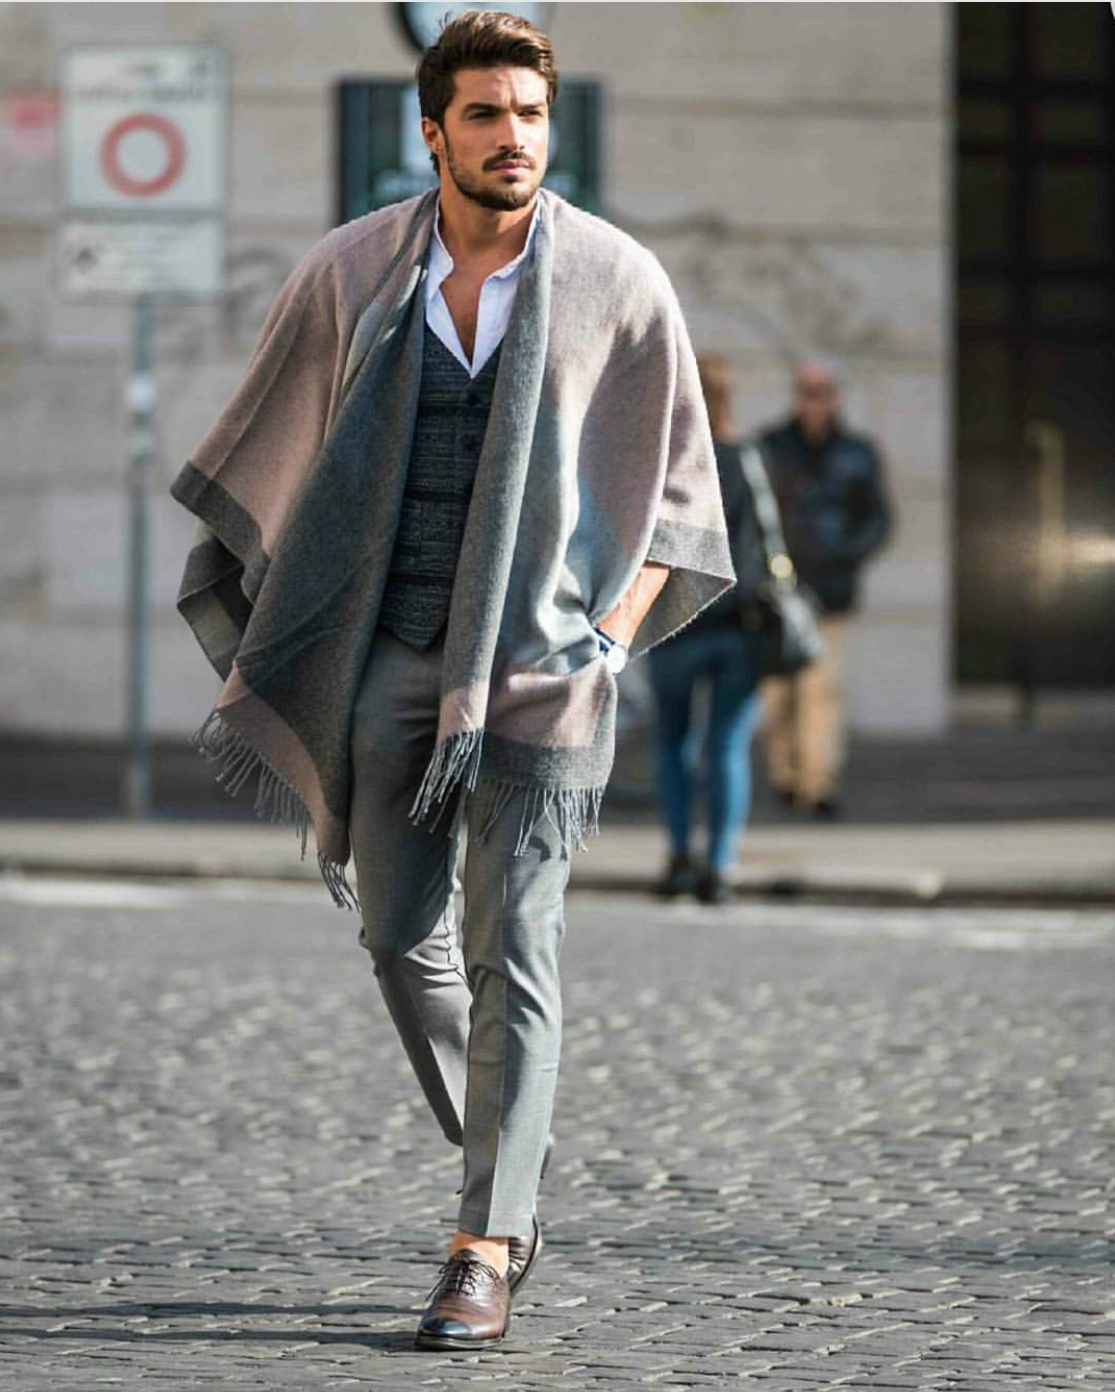 "Los Angeles:<a href=""http://instagram.com/marianodivaio/""target=""_blank""> Mariano Divaio</a>"